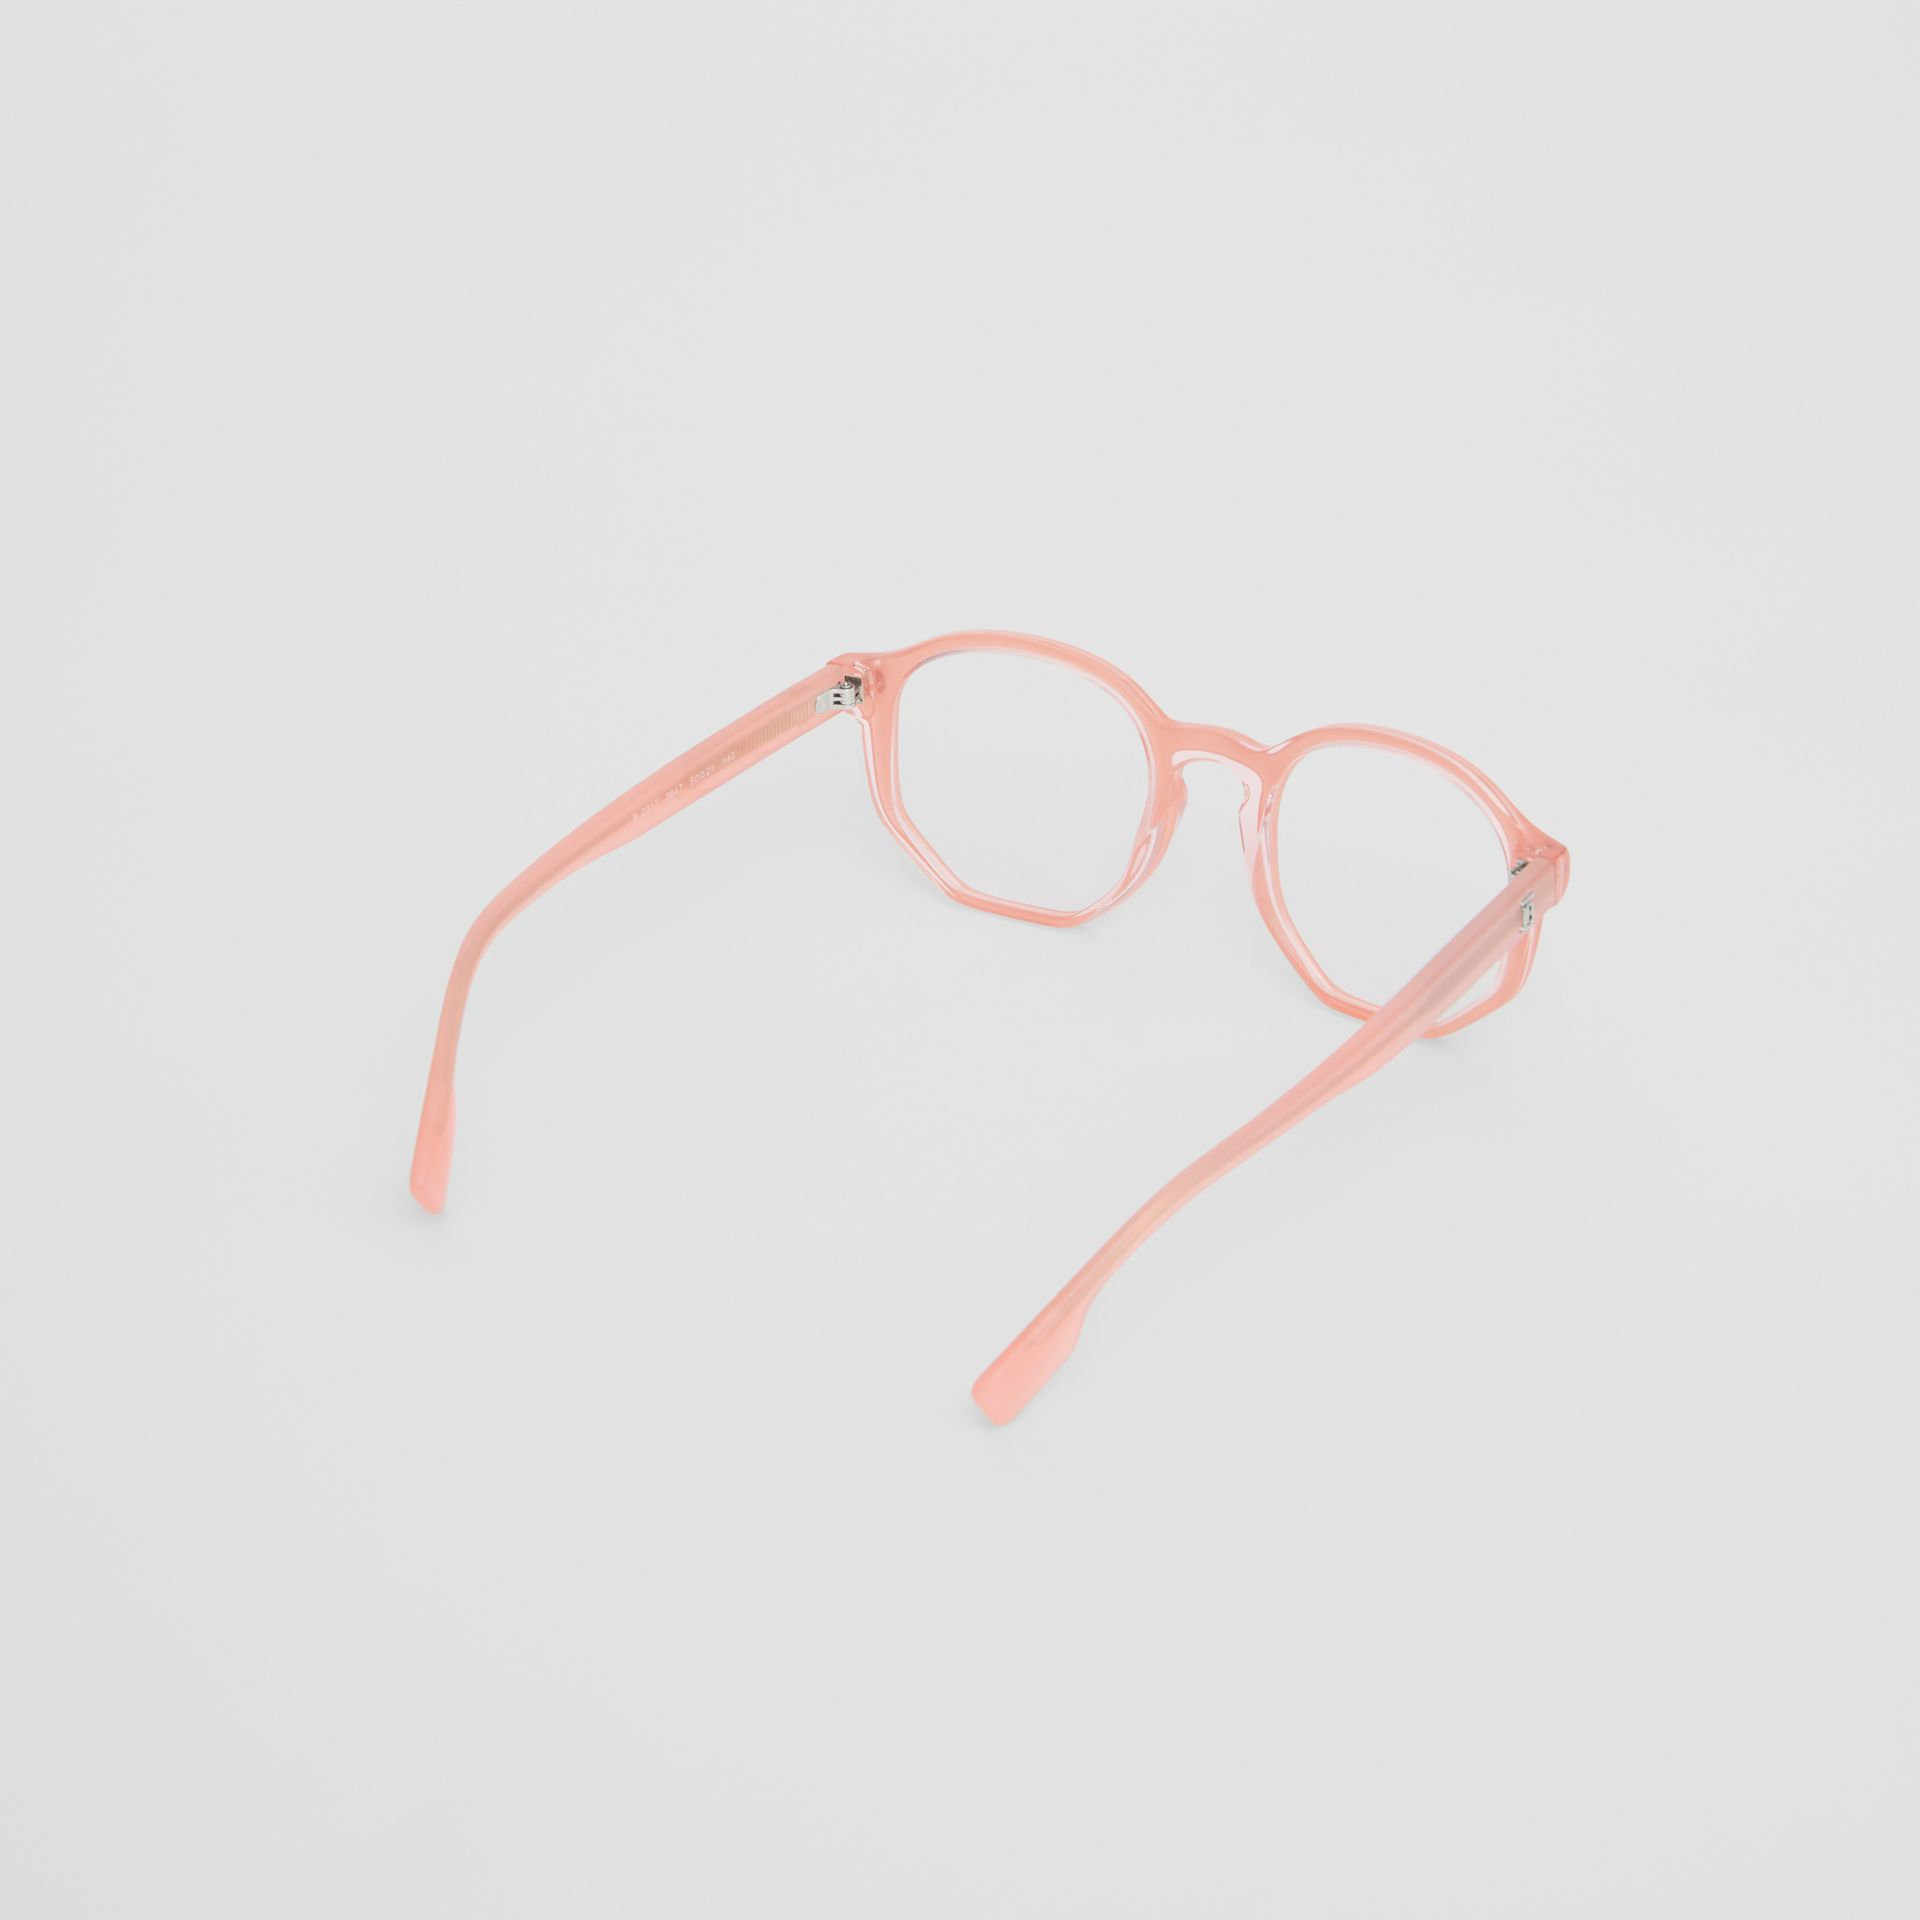 Geometric Optical Frames in Pink - Women | Burberry United Kingdom - gallery image 4